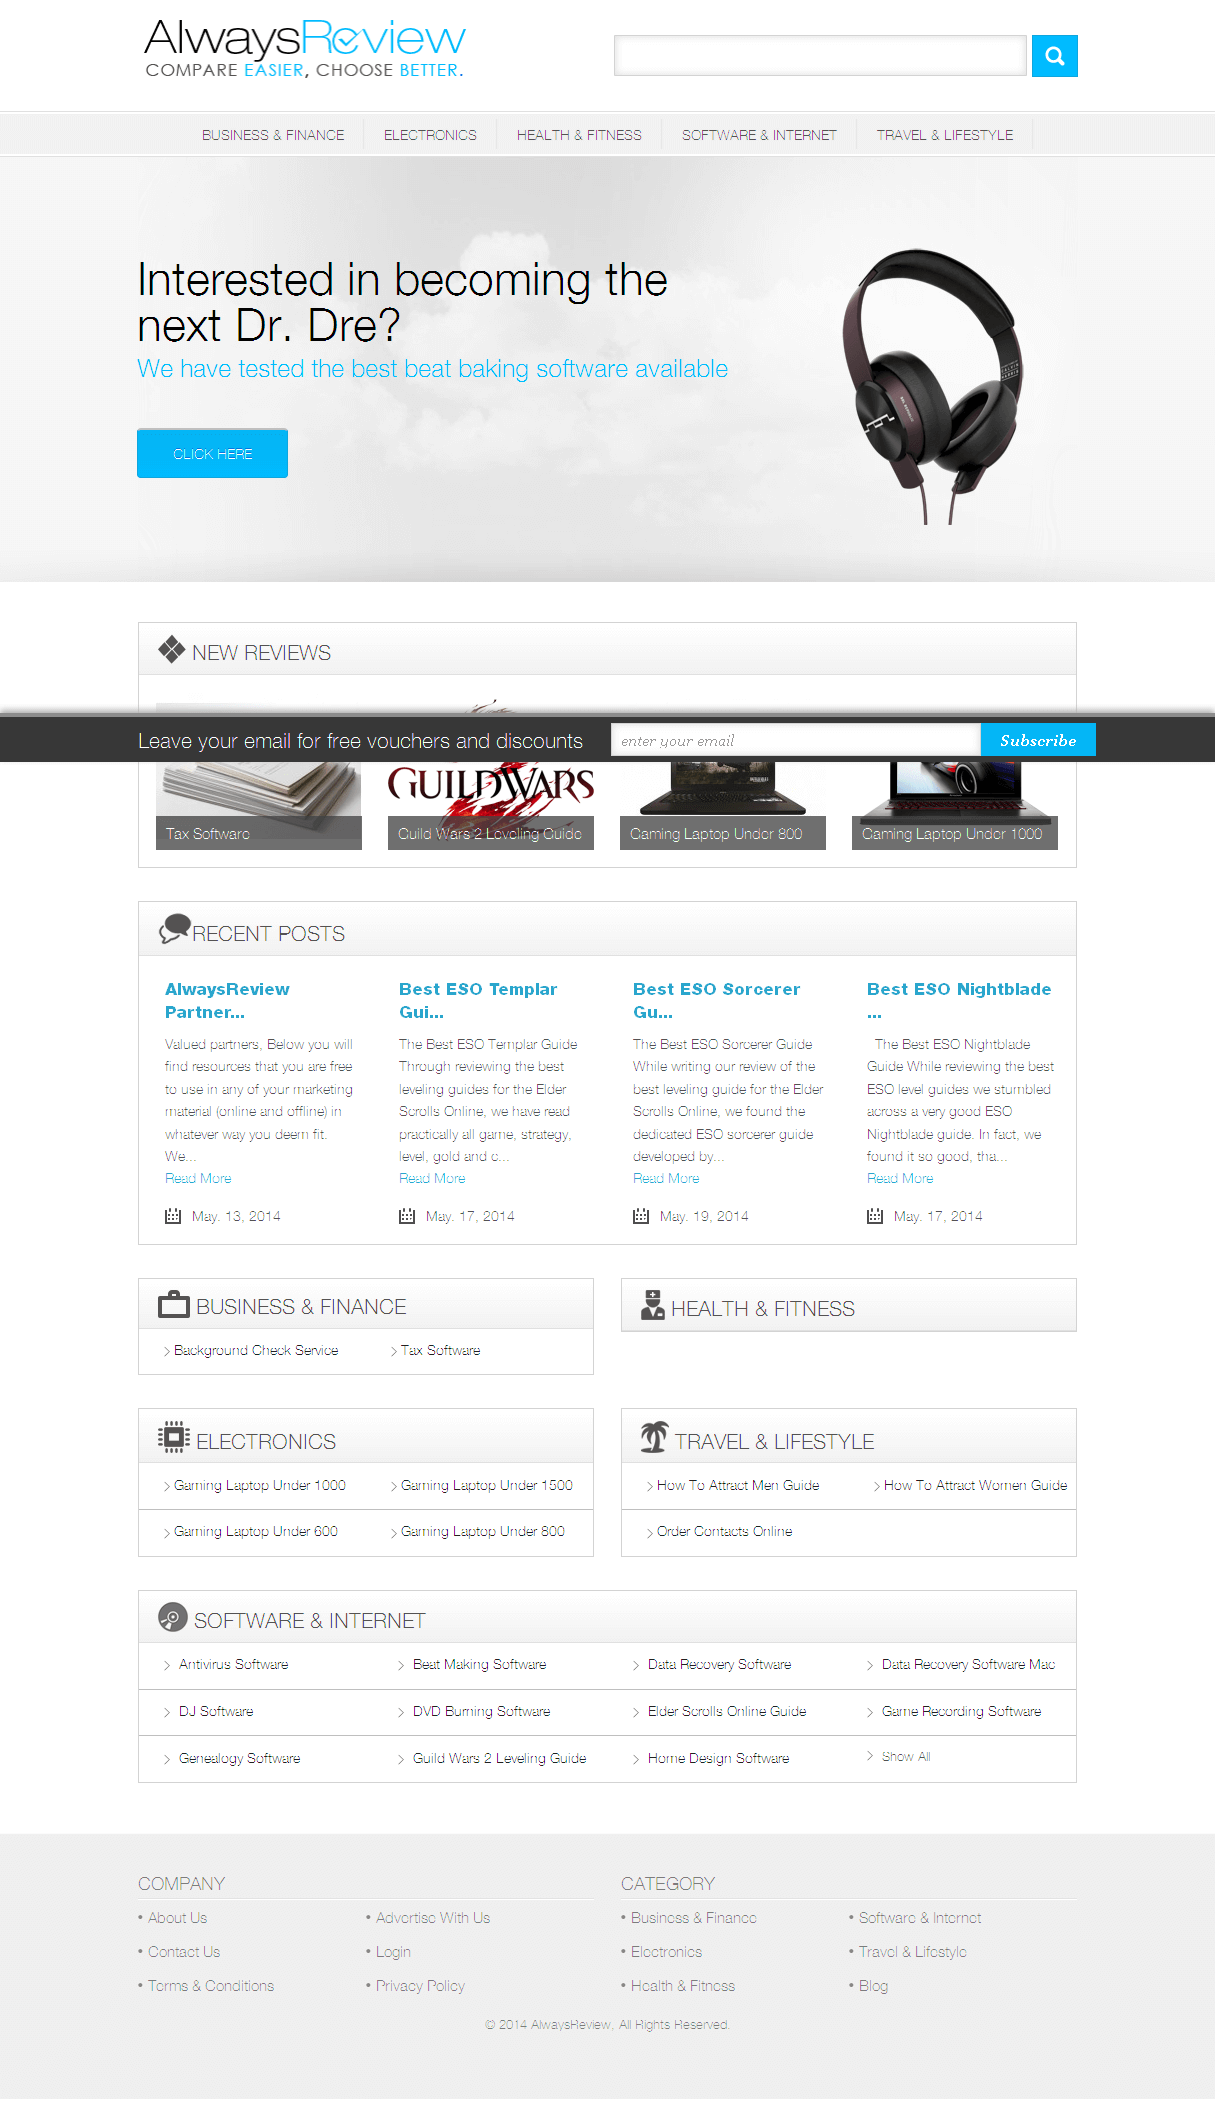 Development of a Product Review Website Using CakePHP Framework